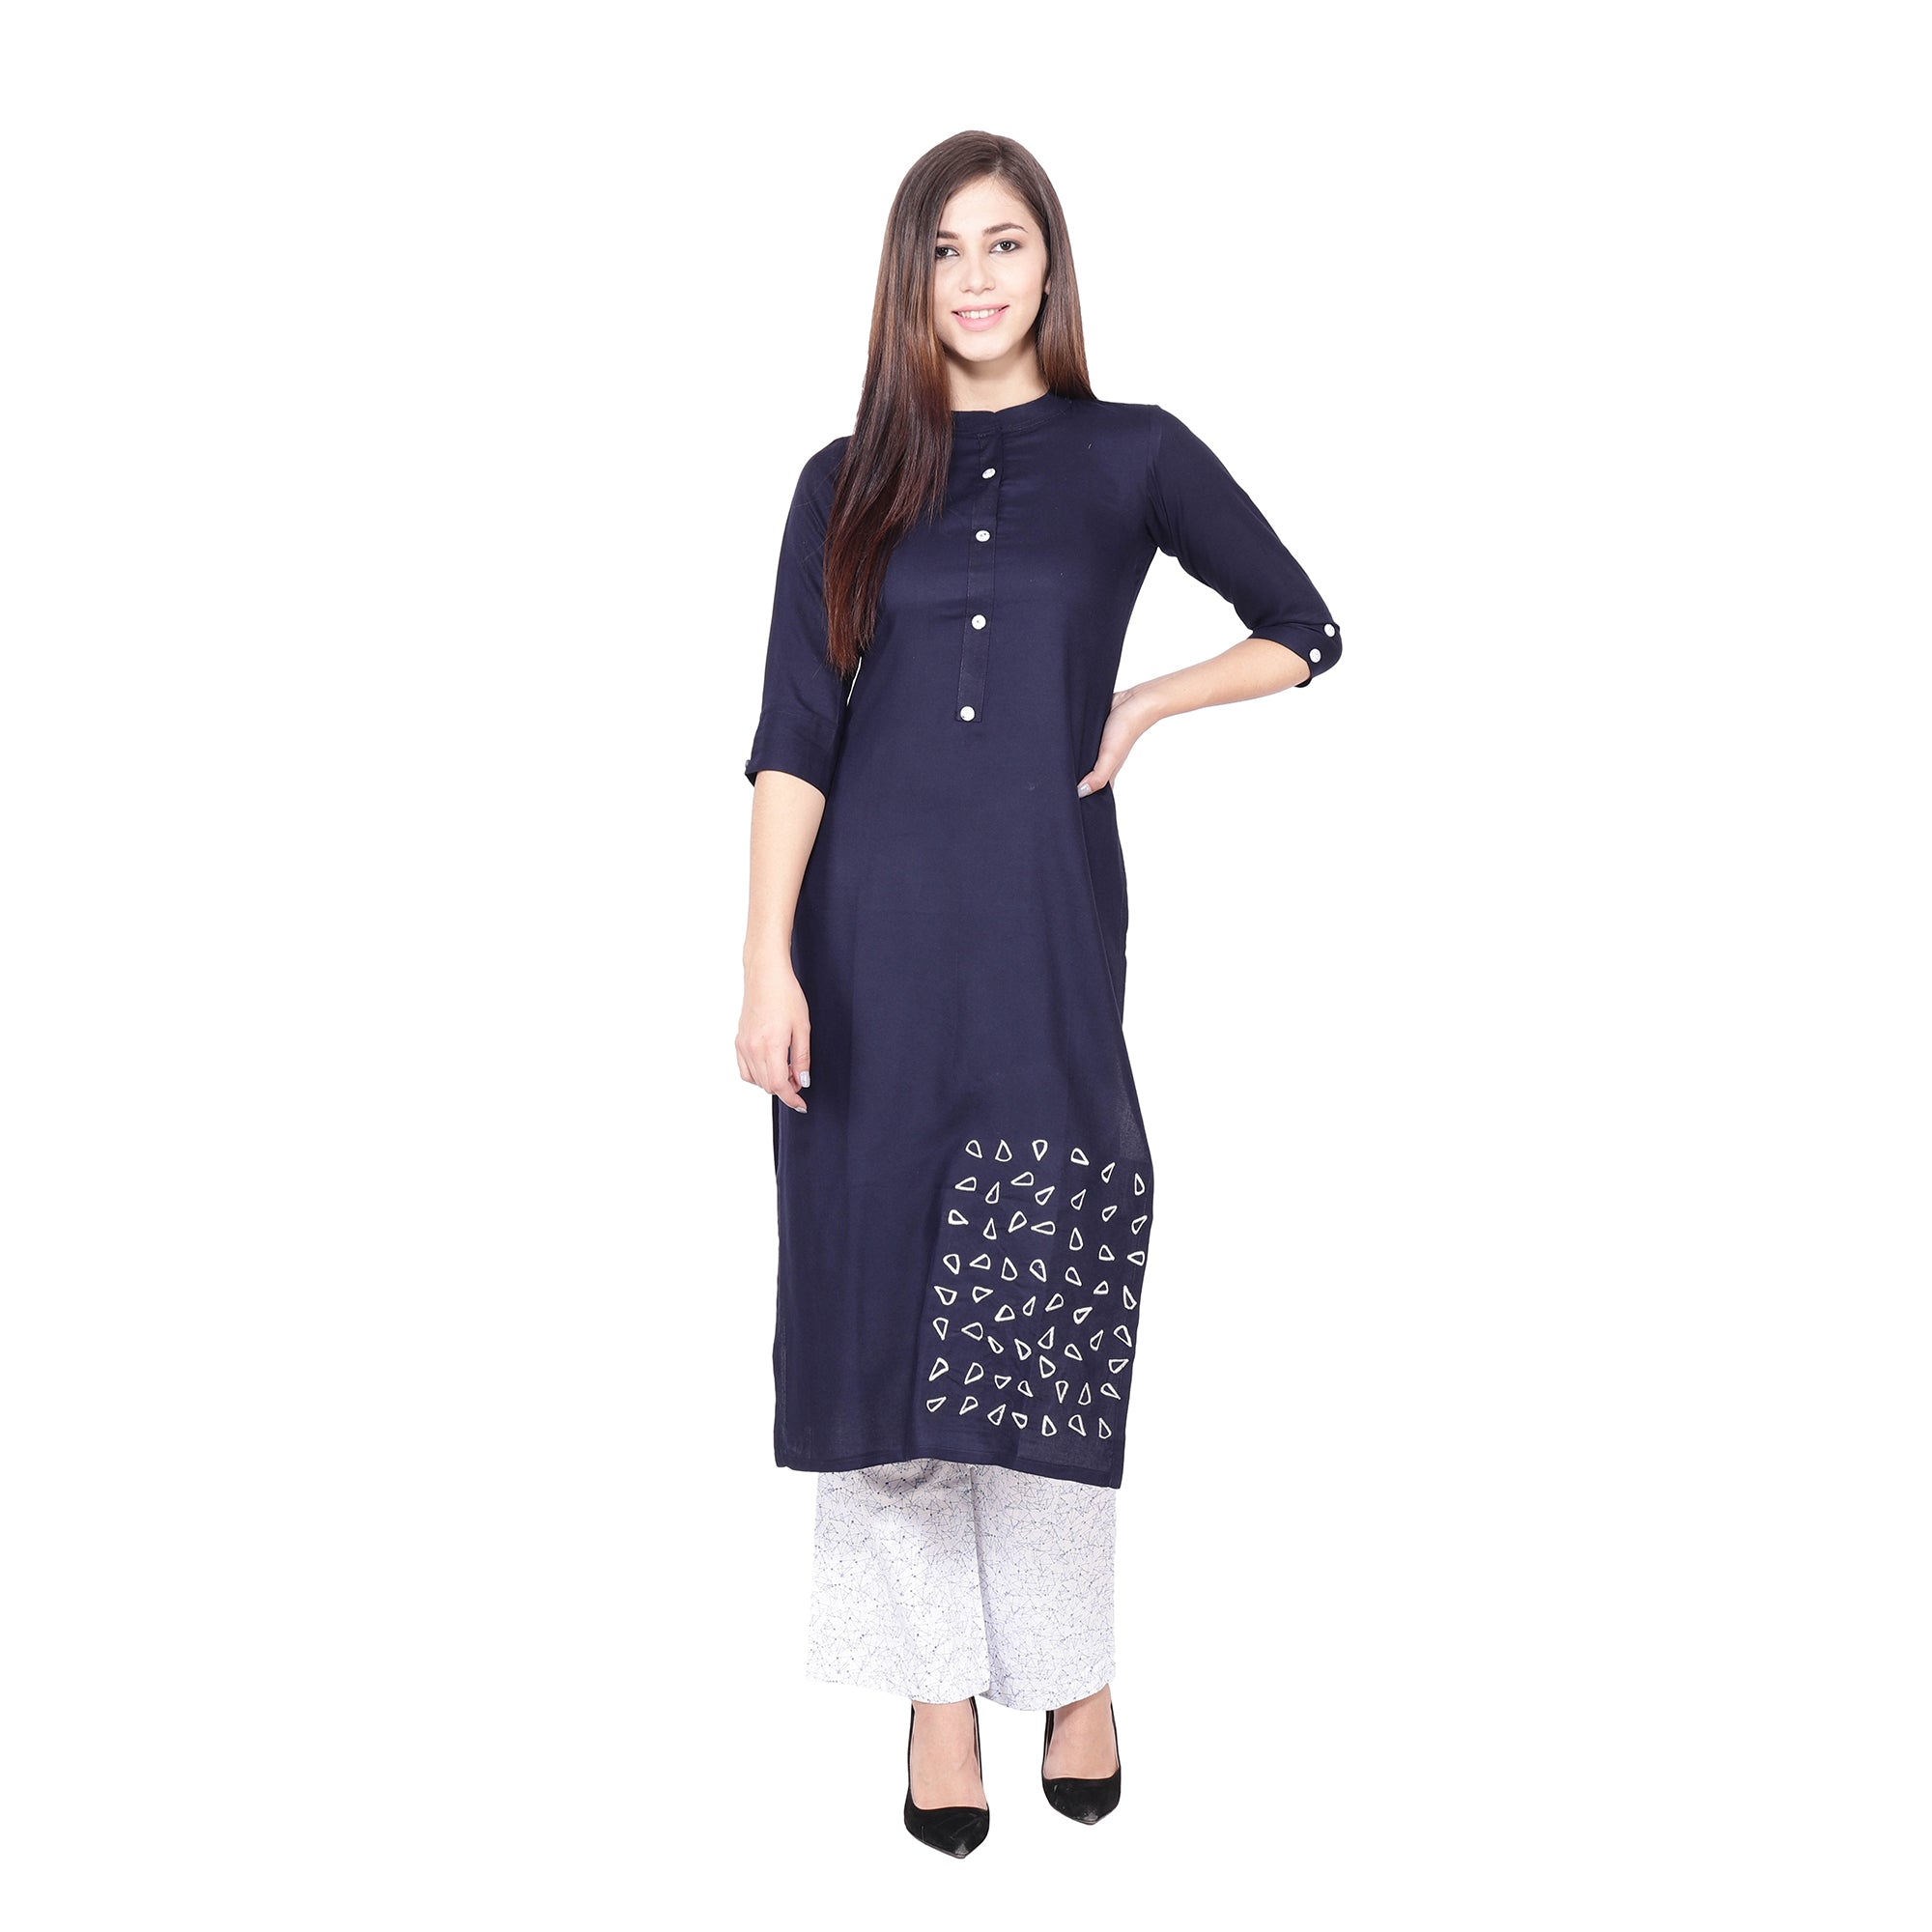 all size, all sizes, apella, best online store, COTTON, kurta suits, NAVY BLUE, palazzo suits, plus size, pluz size, rayon, reasonable price, shop online, skin friendly fabrics, soft cotton,